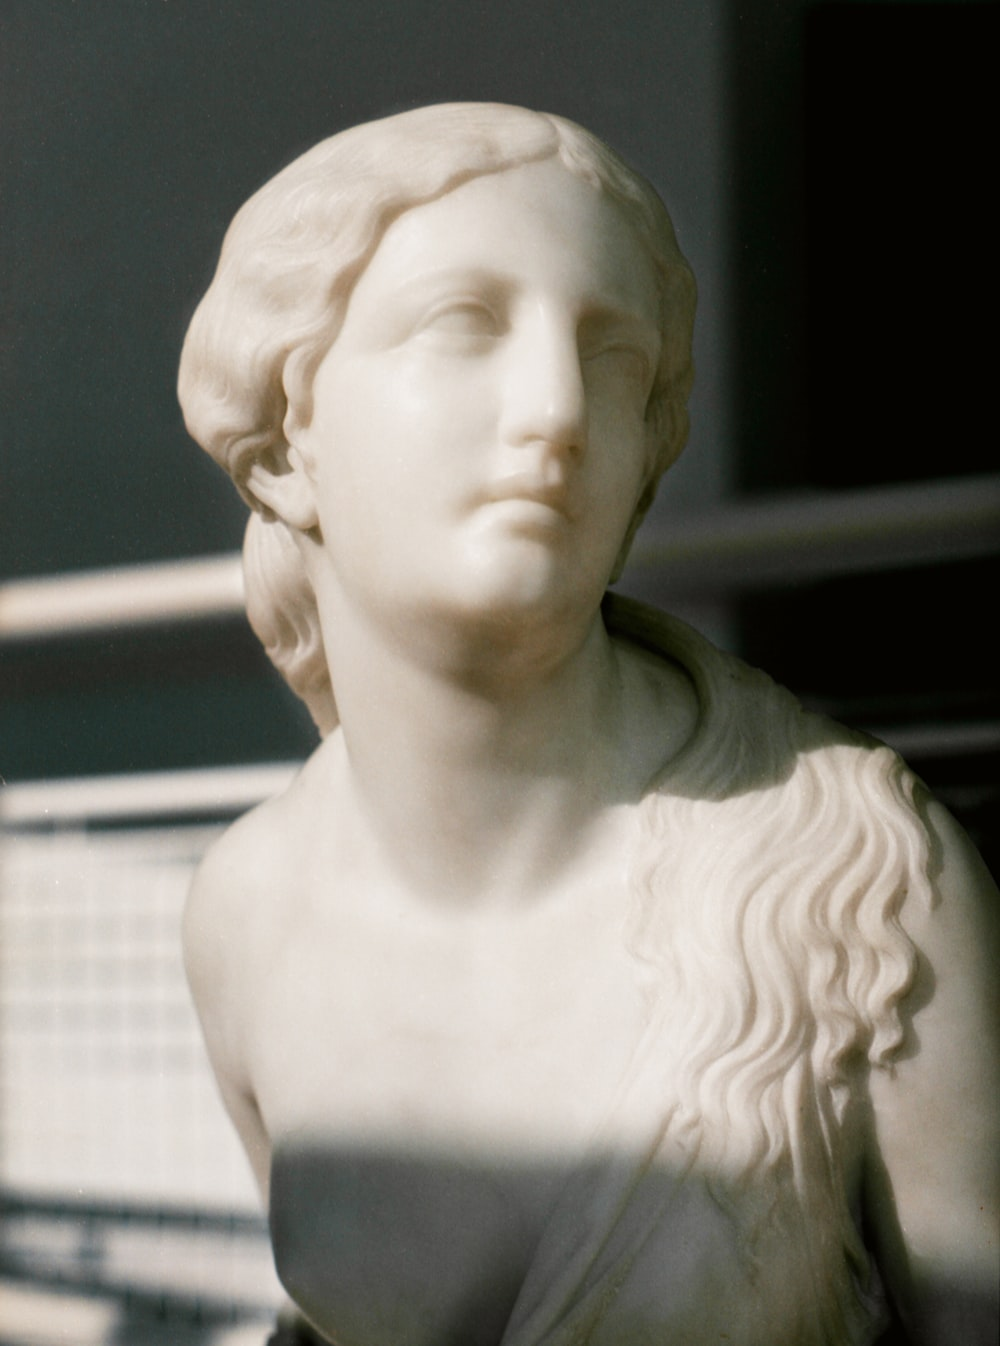 white ceramic bust of a woman